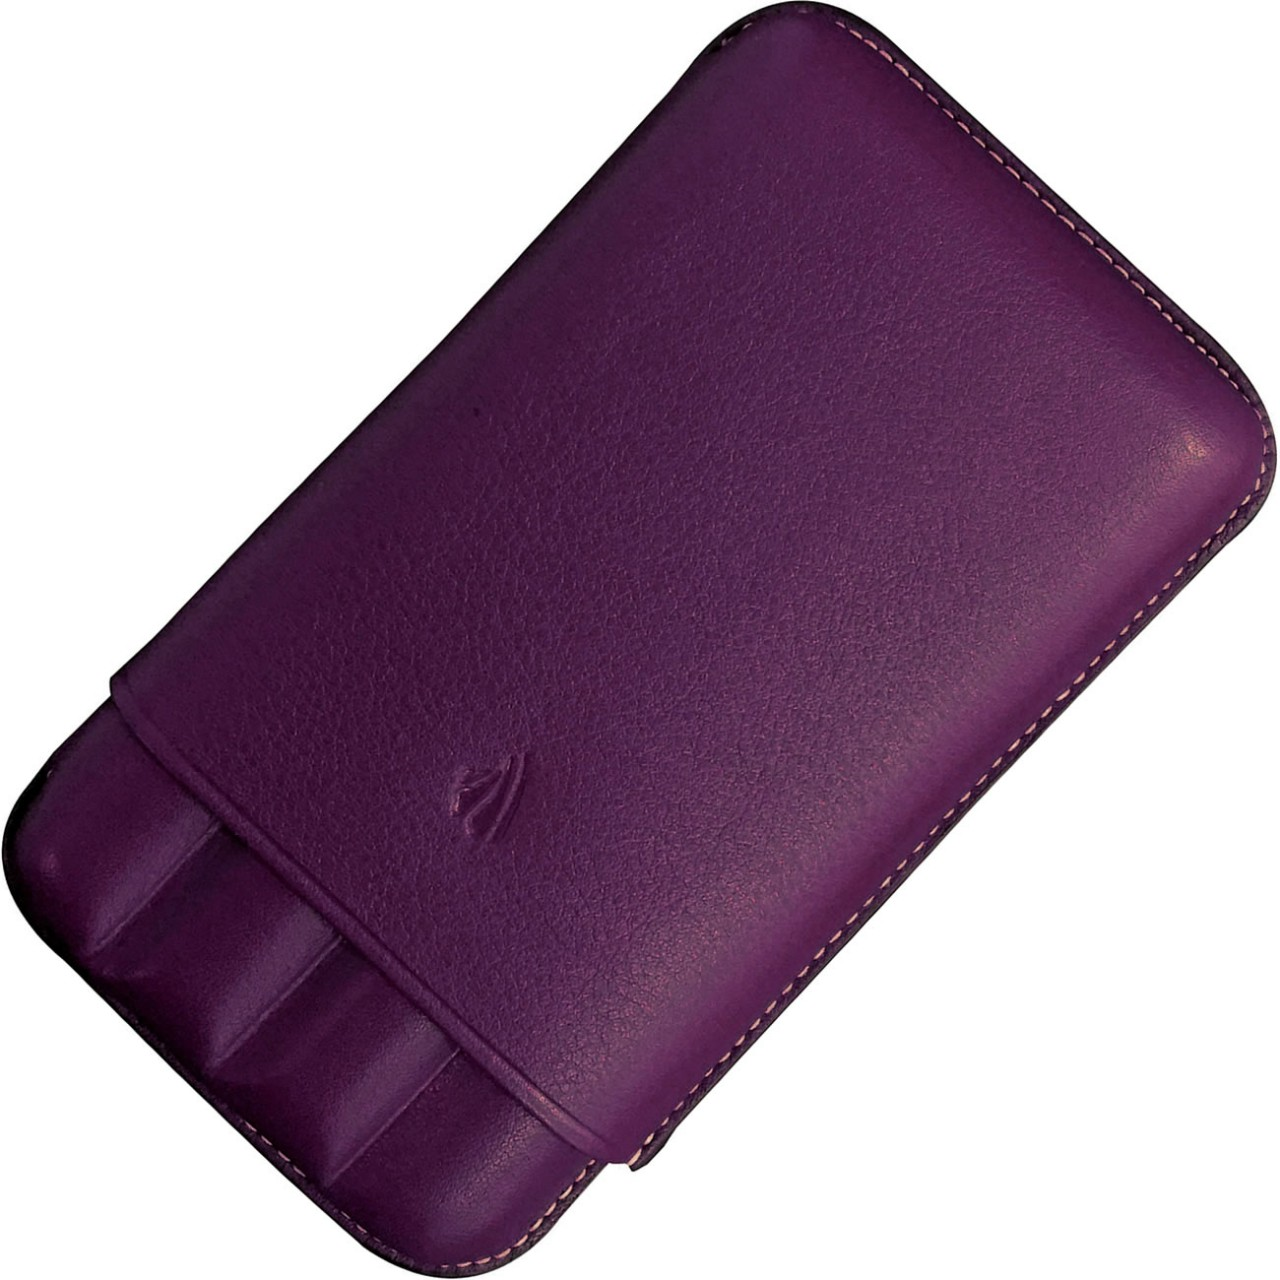 COLLECTOR 4-PEN CASE * RIVIERA PURPLE